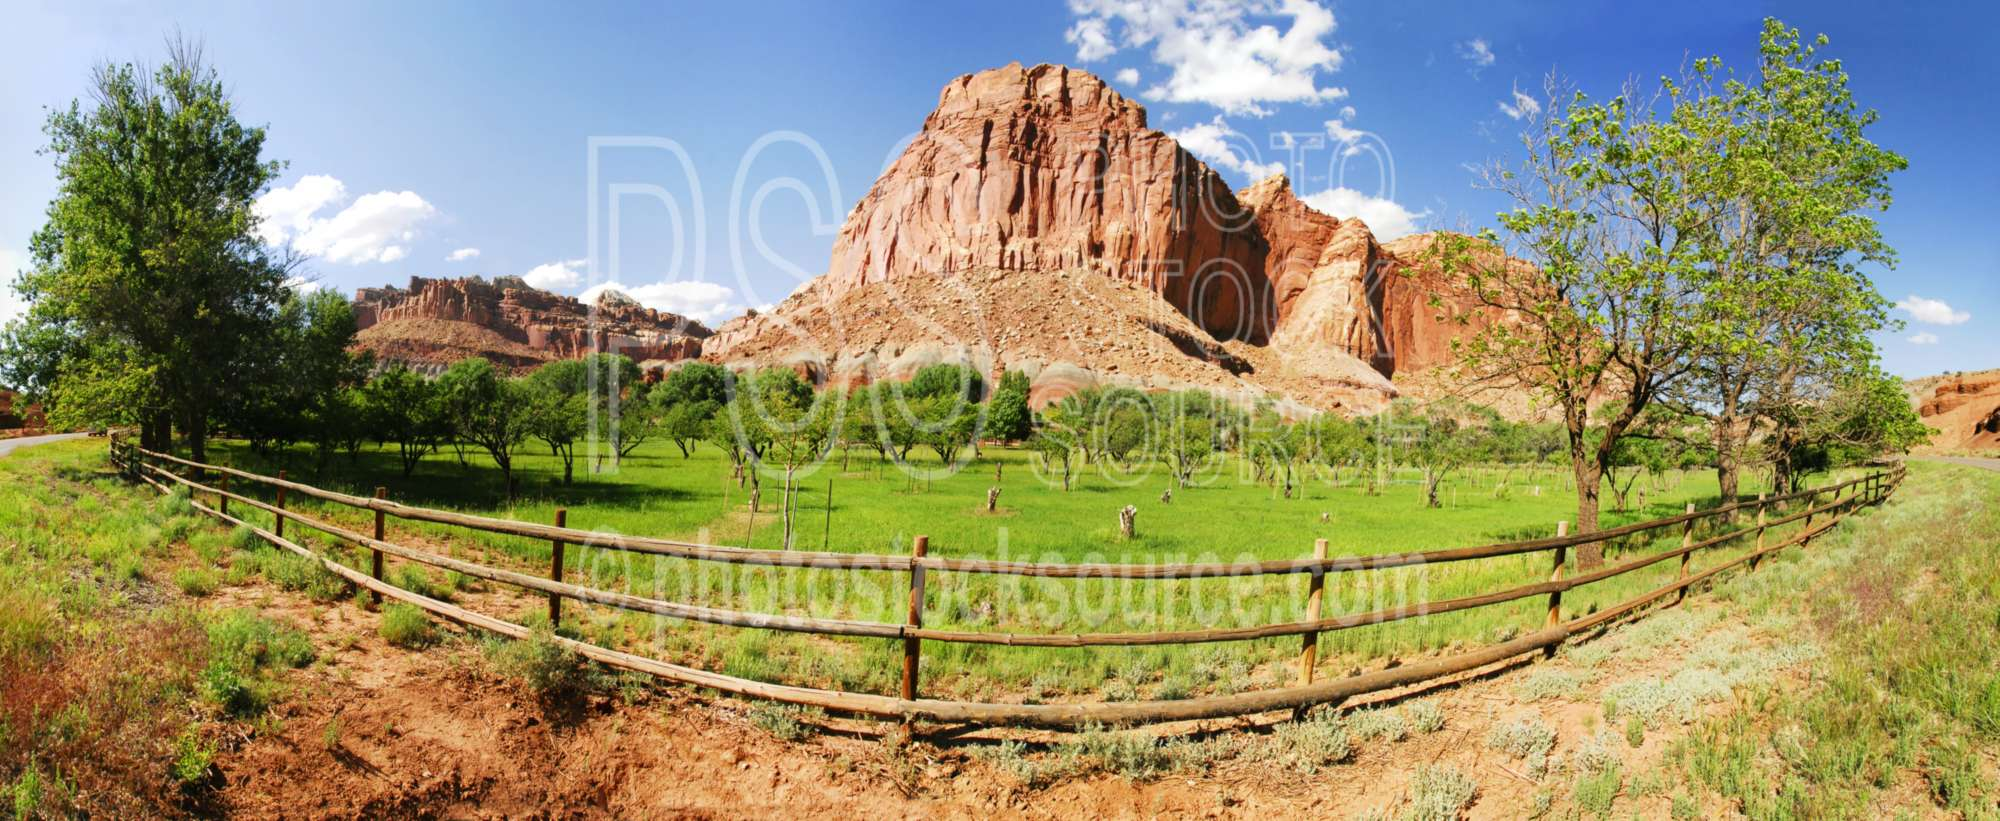 Fruita Orchards and Rocks